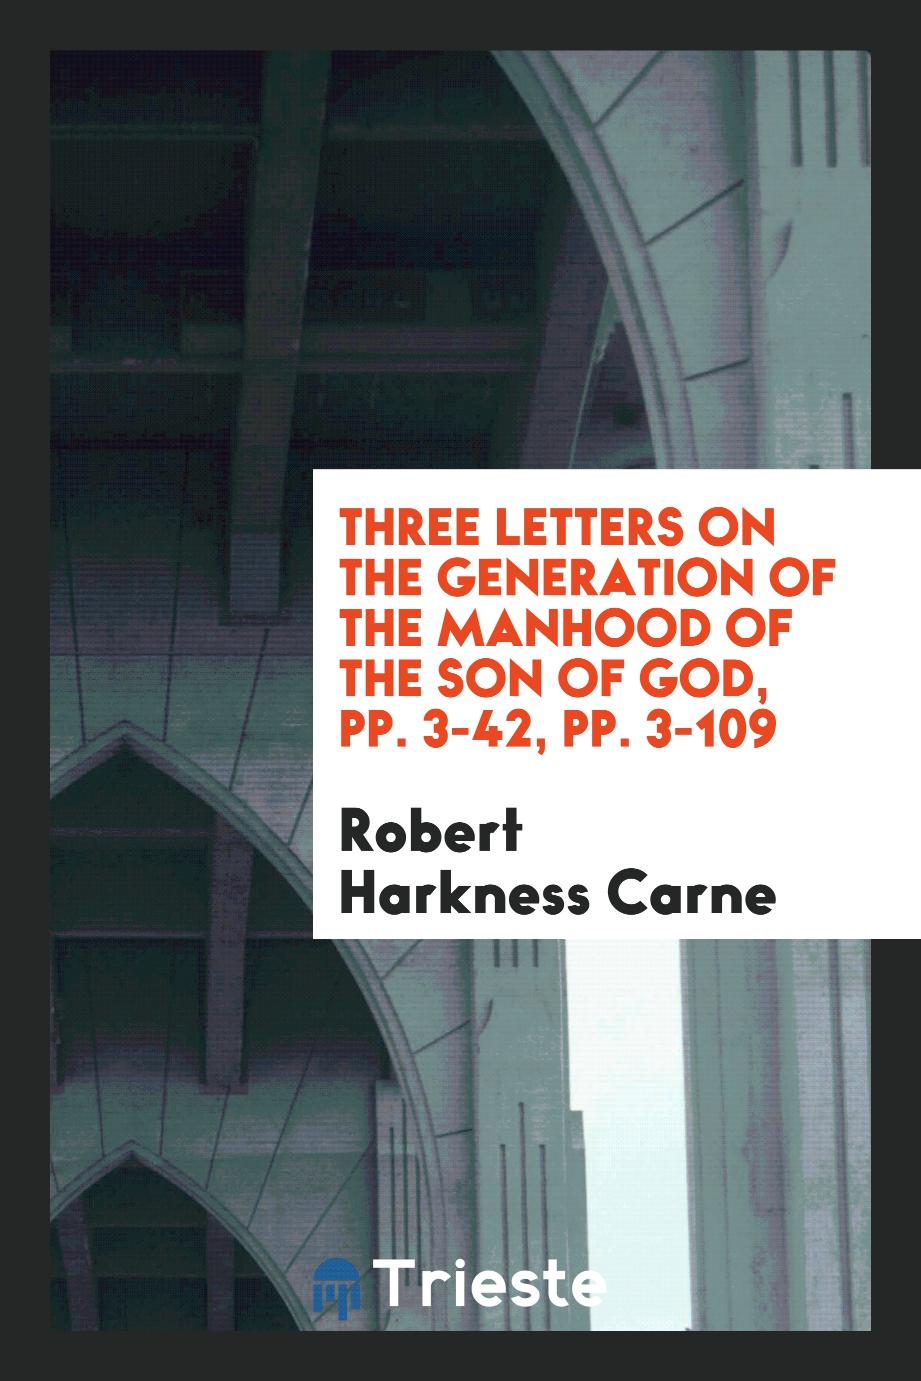 Three letters on the generation of the manhood of the Son of God, pp. 3-42, pp. 3-109